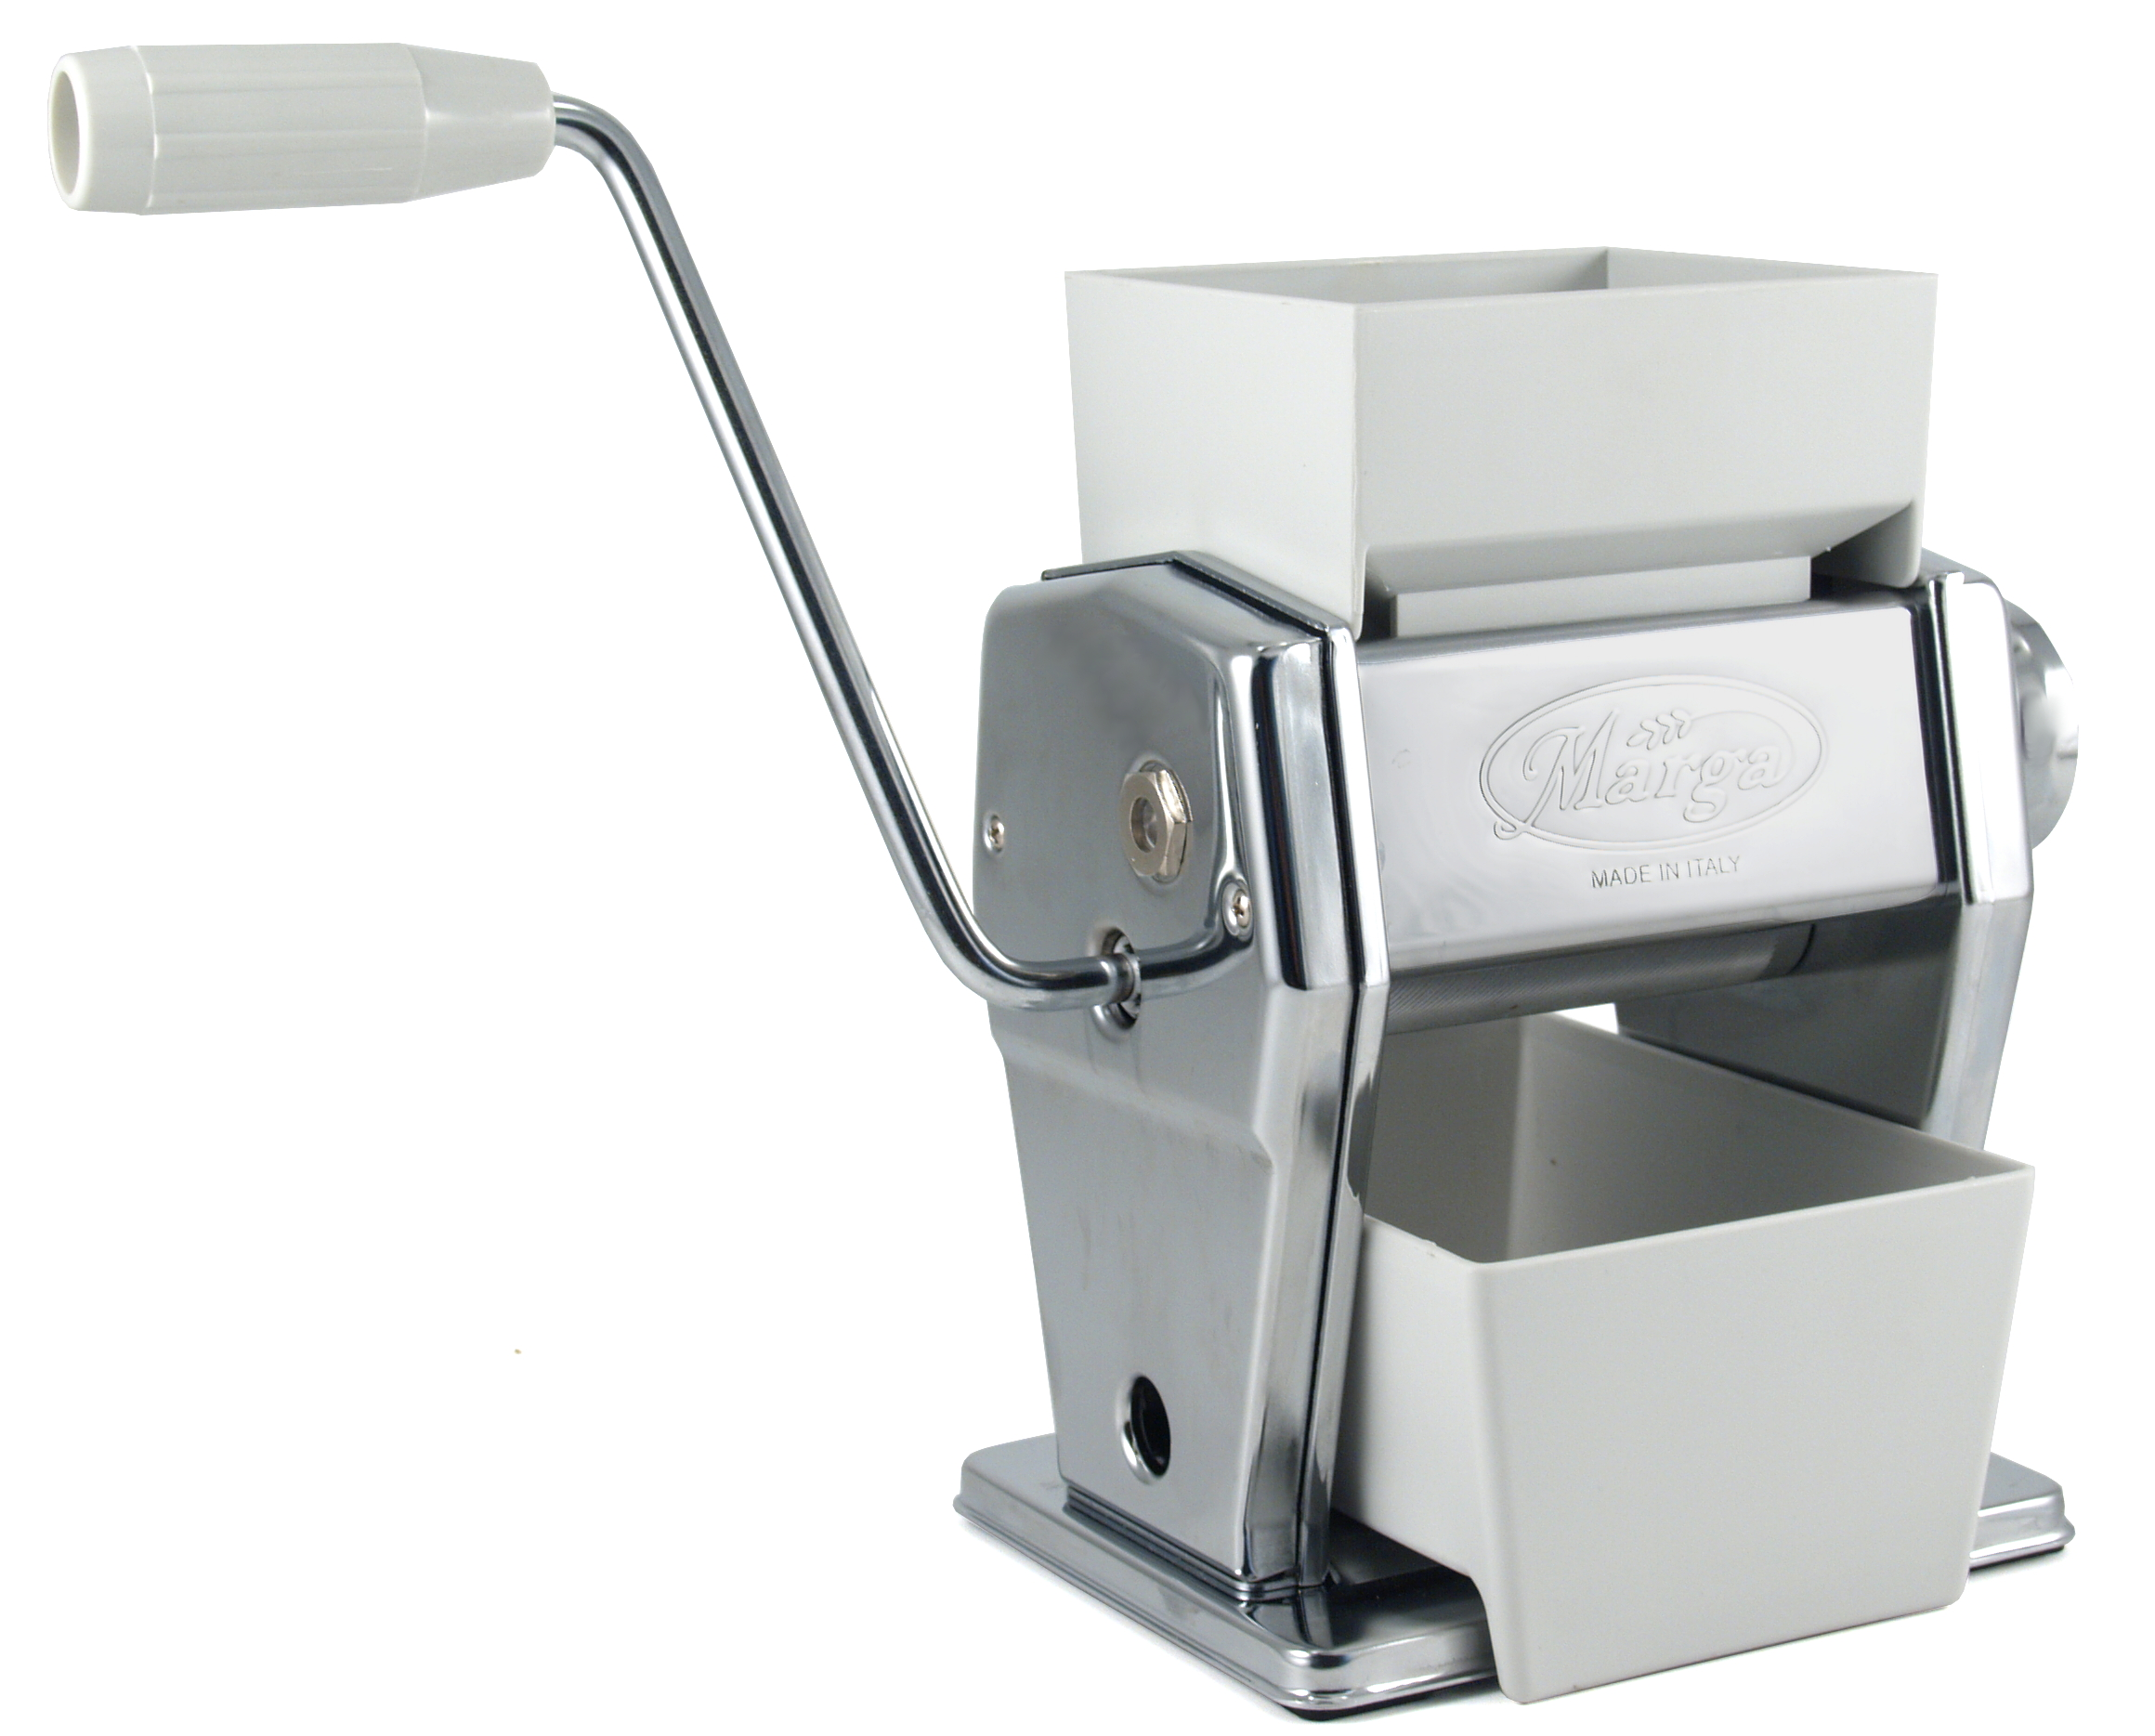 Atlas Marcato Marga Grain Mill